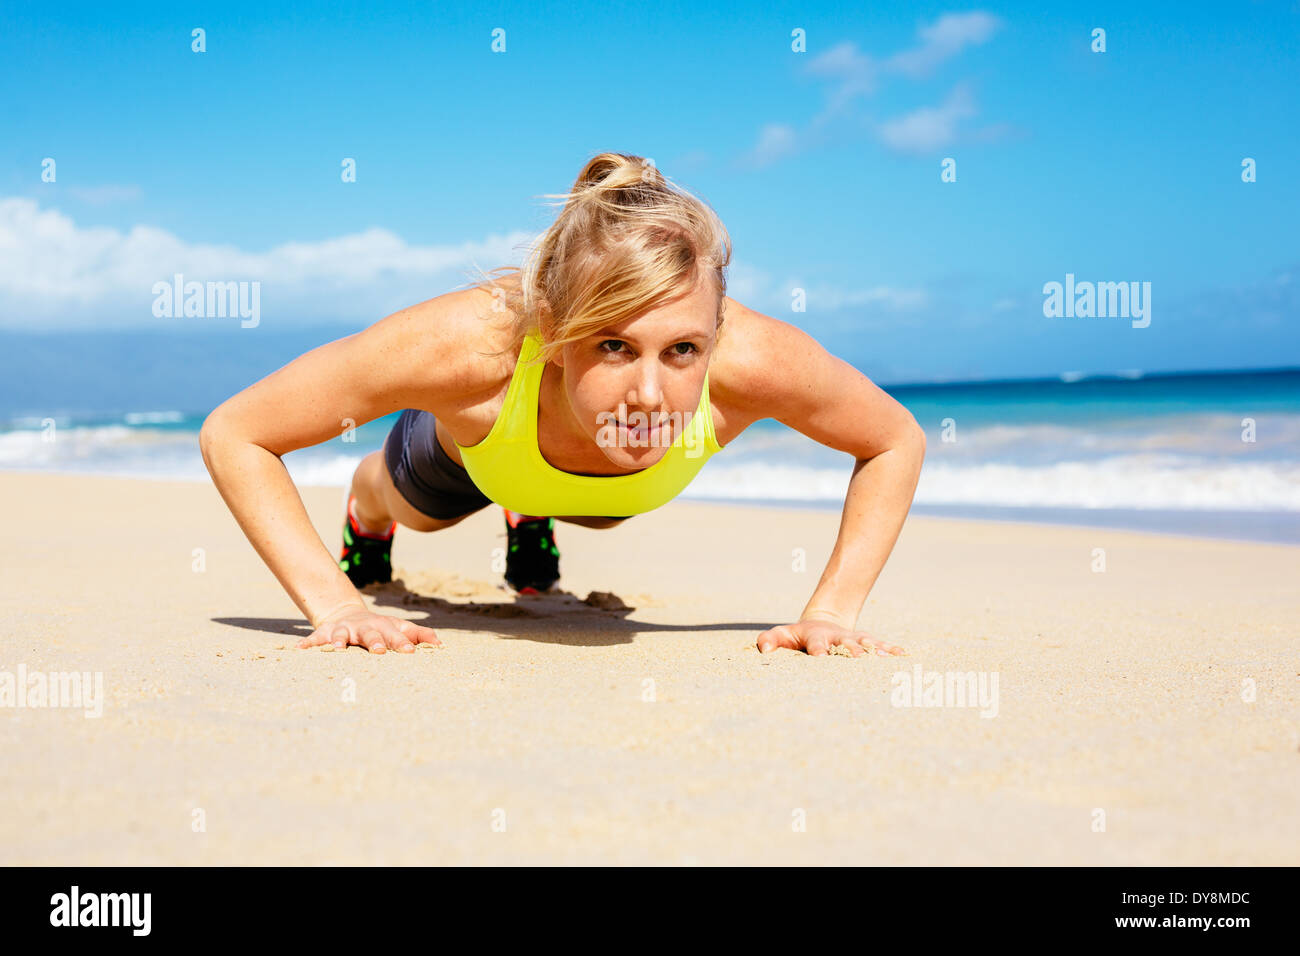 Young attractive woman doing push ups outside. Fitness woman working out at the beach. Crossfit exercise. - Stock Image